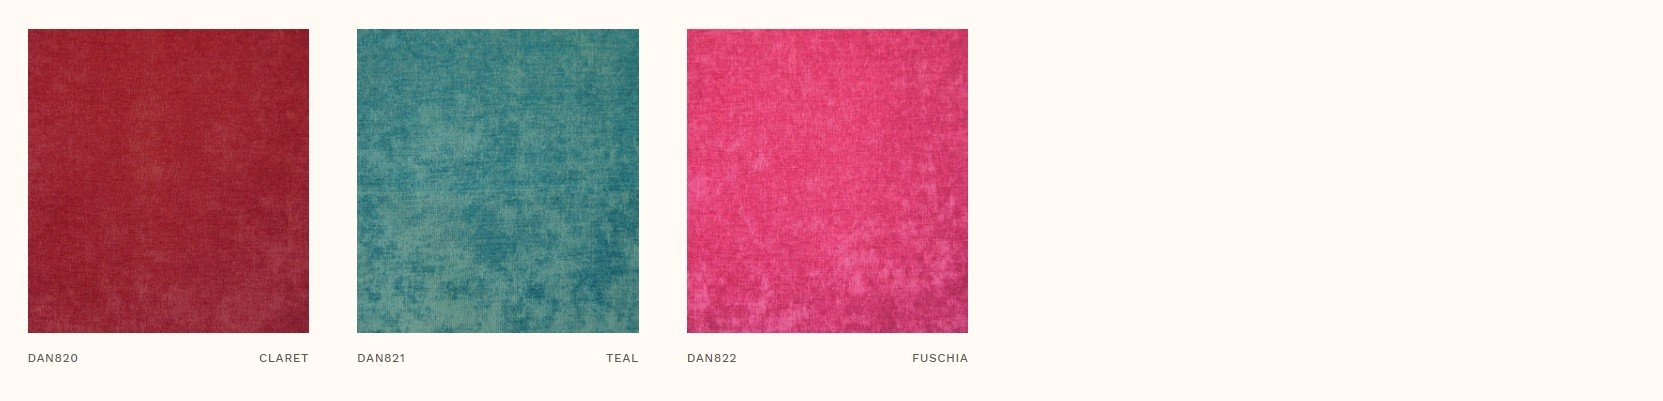 Danza Fabric Guide 5